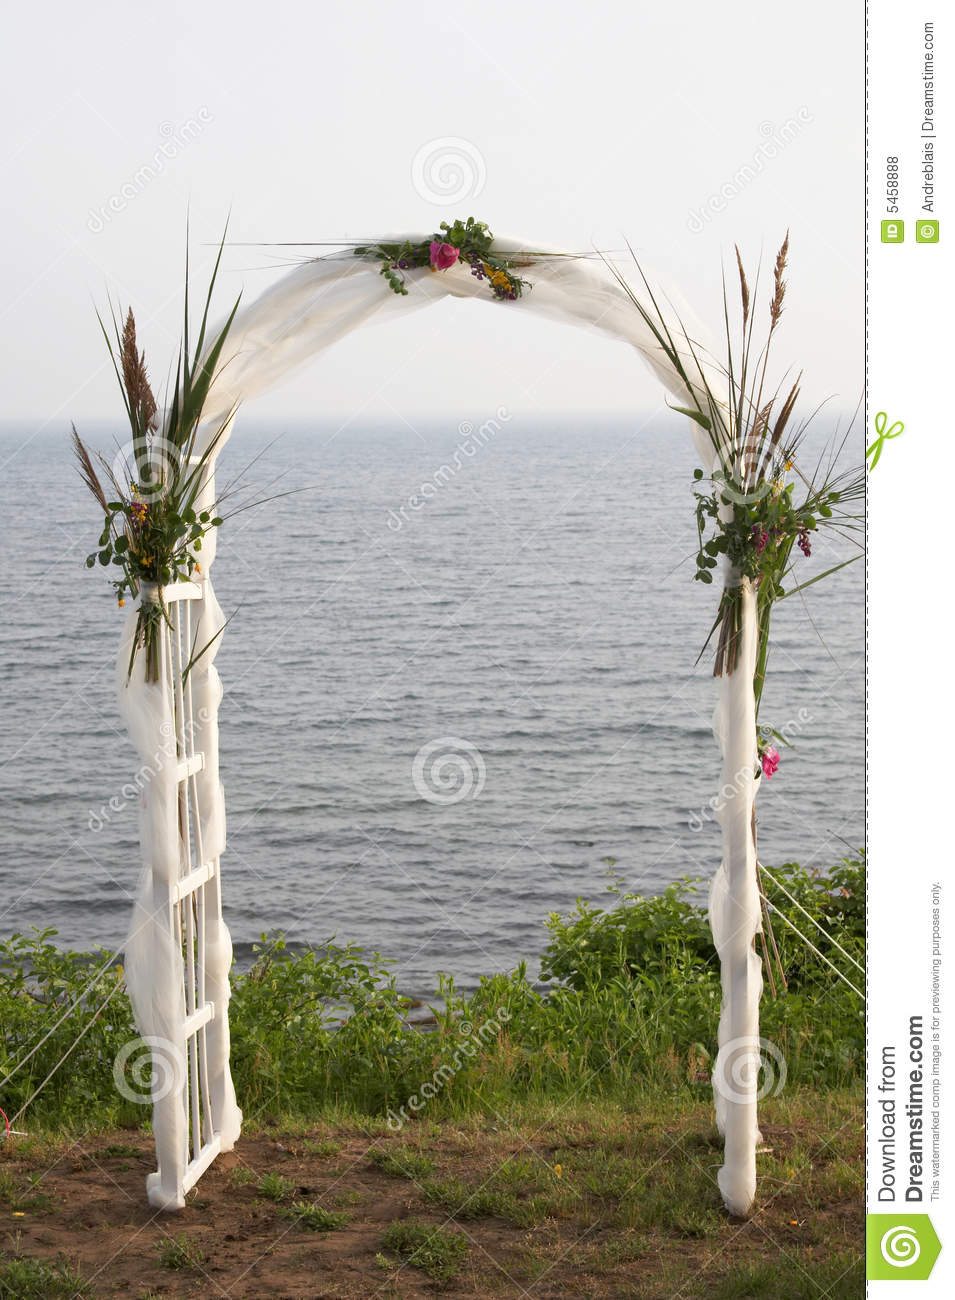 outdoor dream chair sam moore leather wedding alter royalty free stock photos - image: 5458888